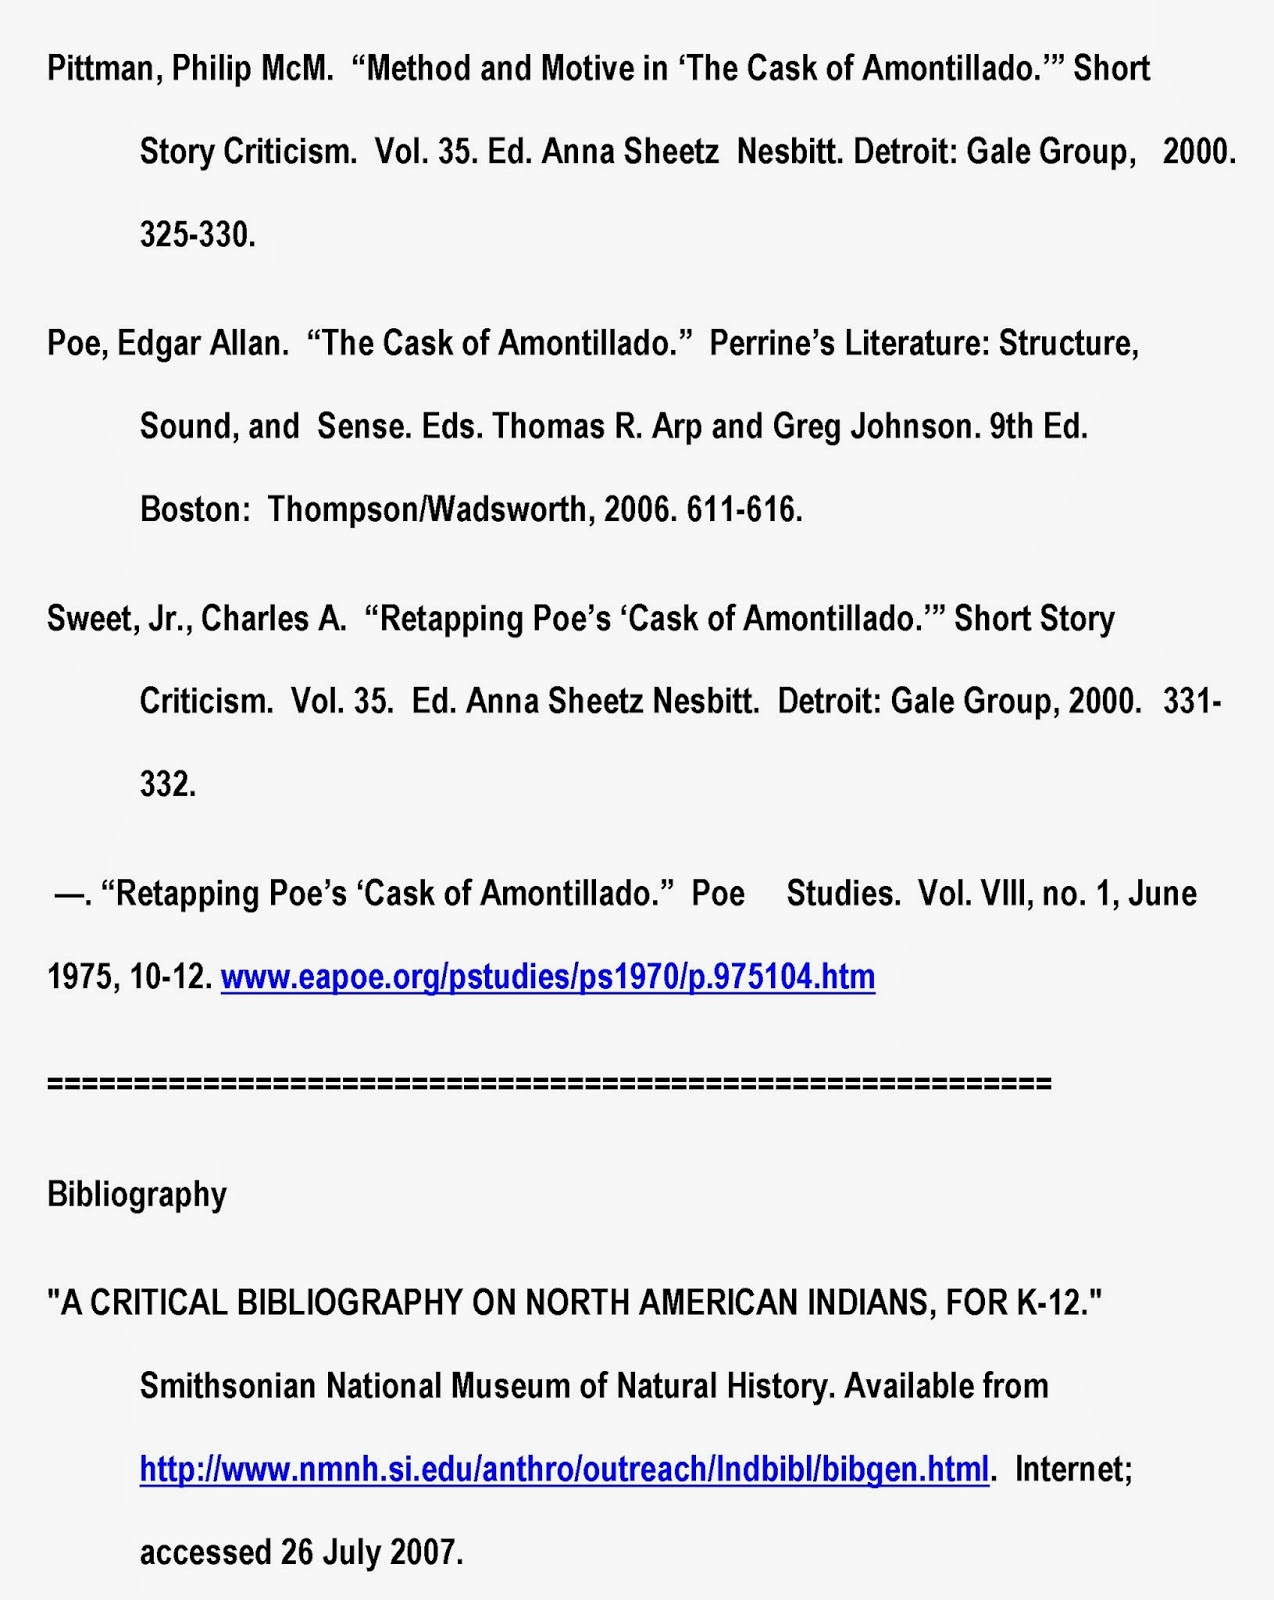 apa format works cited page